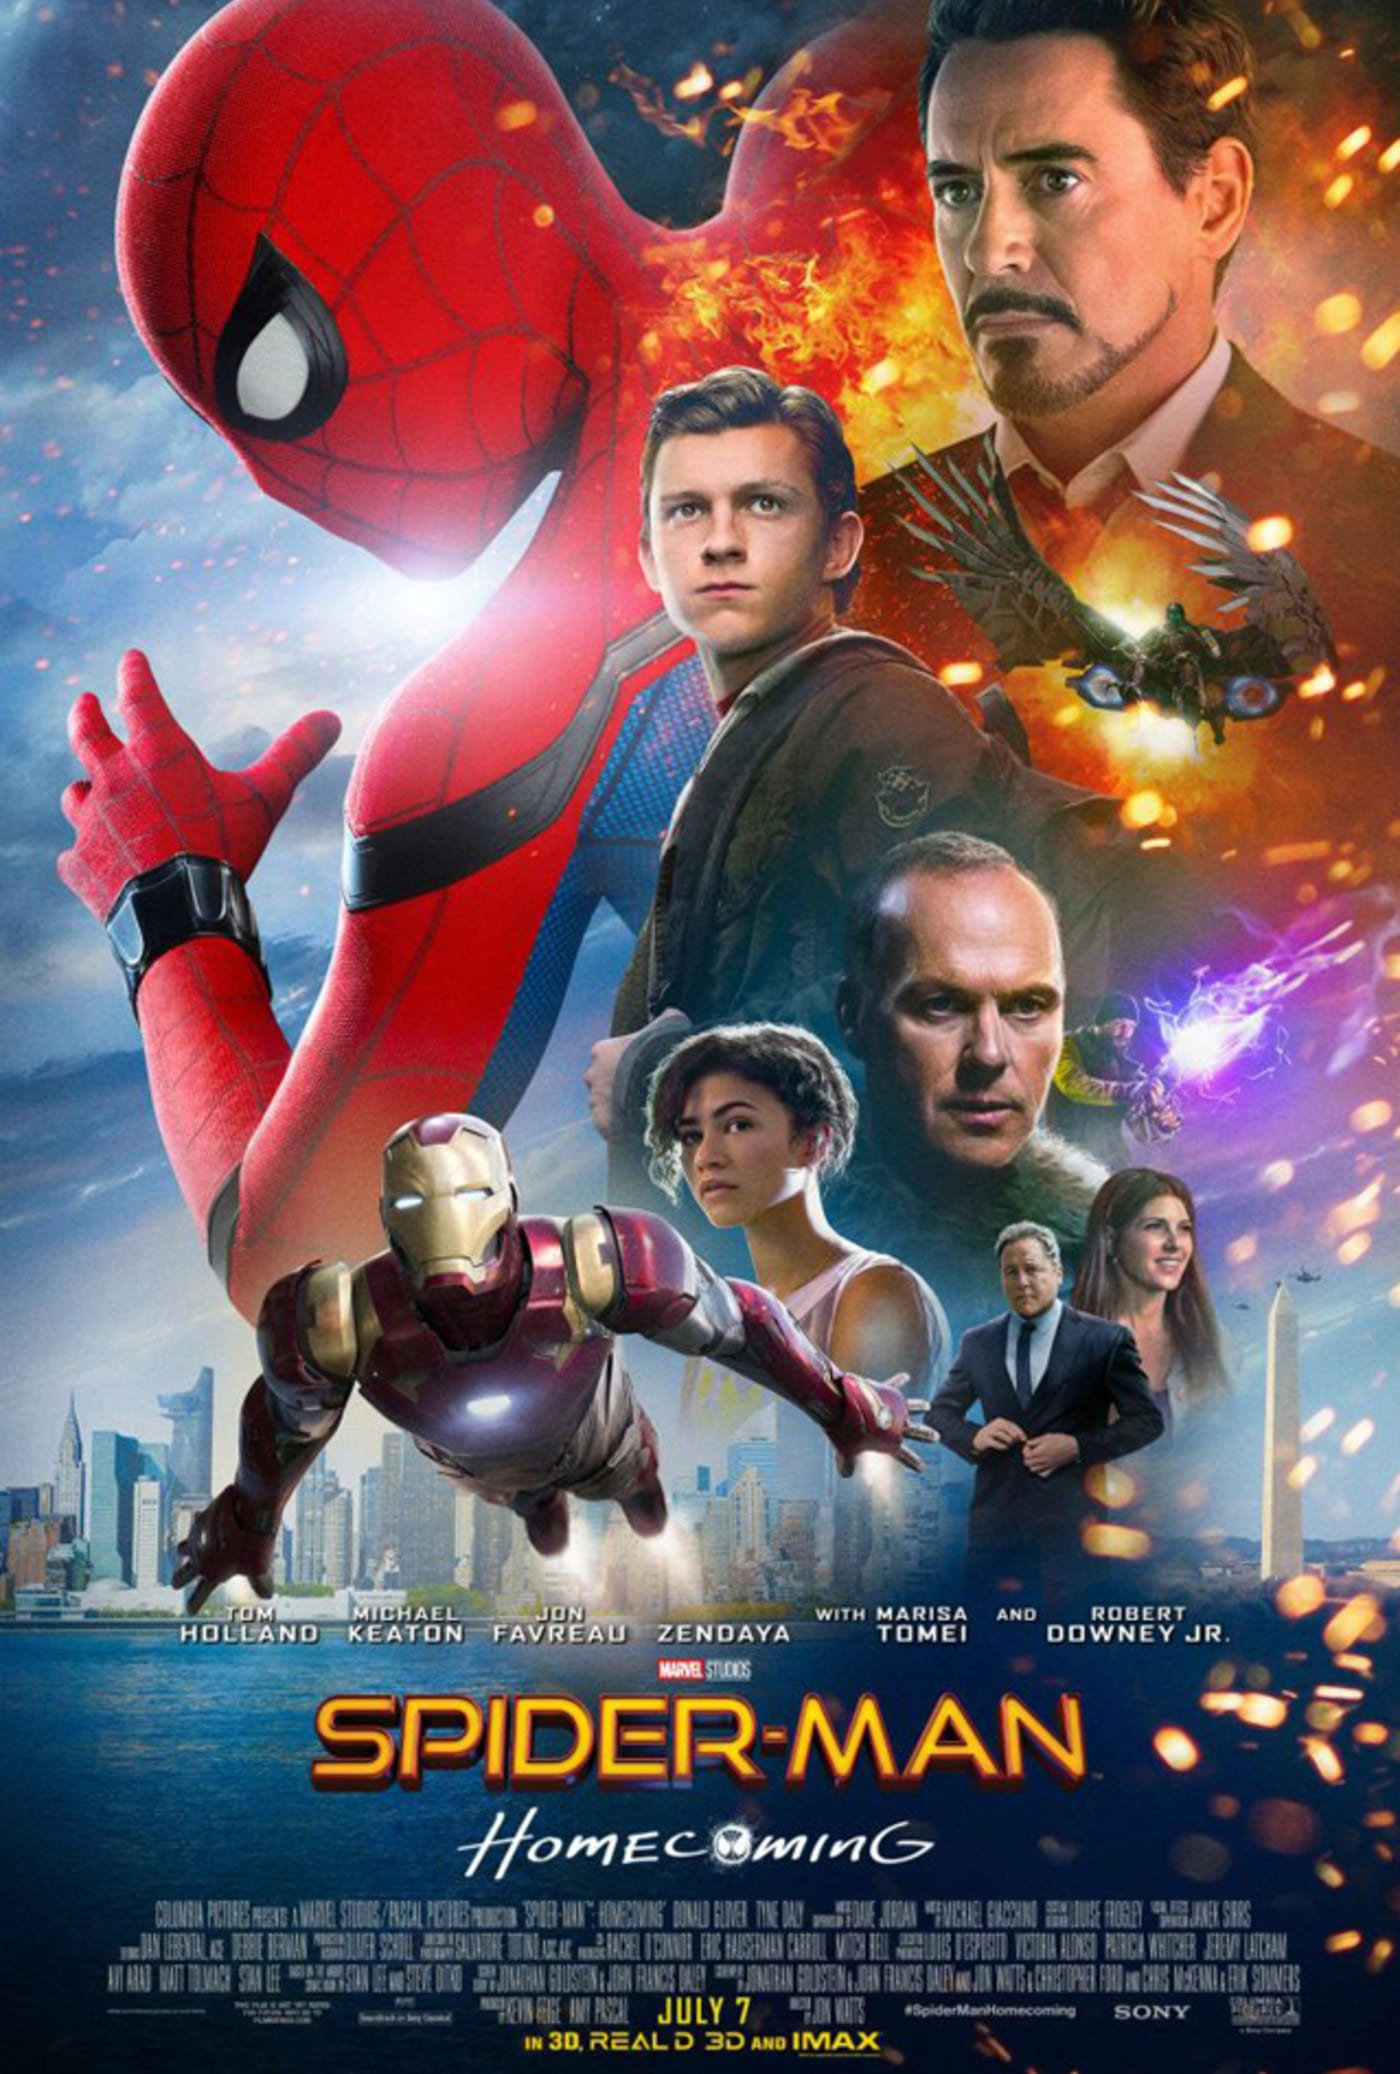 'Spider Man: Homecoming' poster